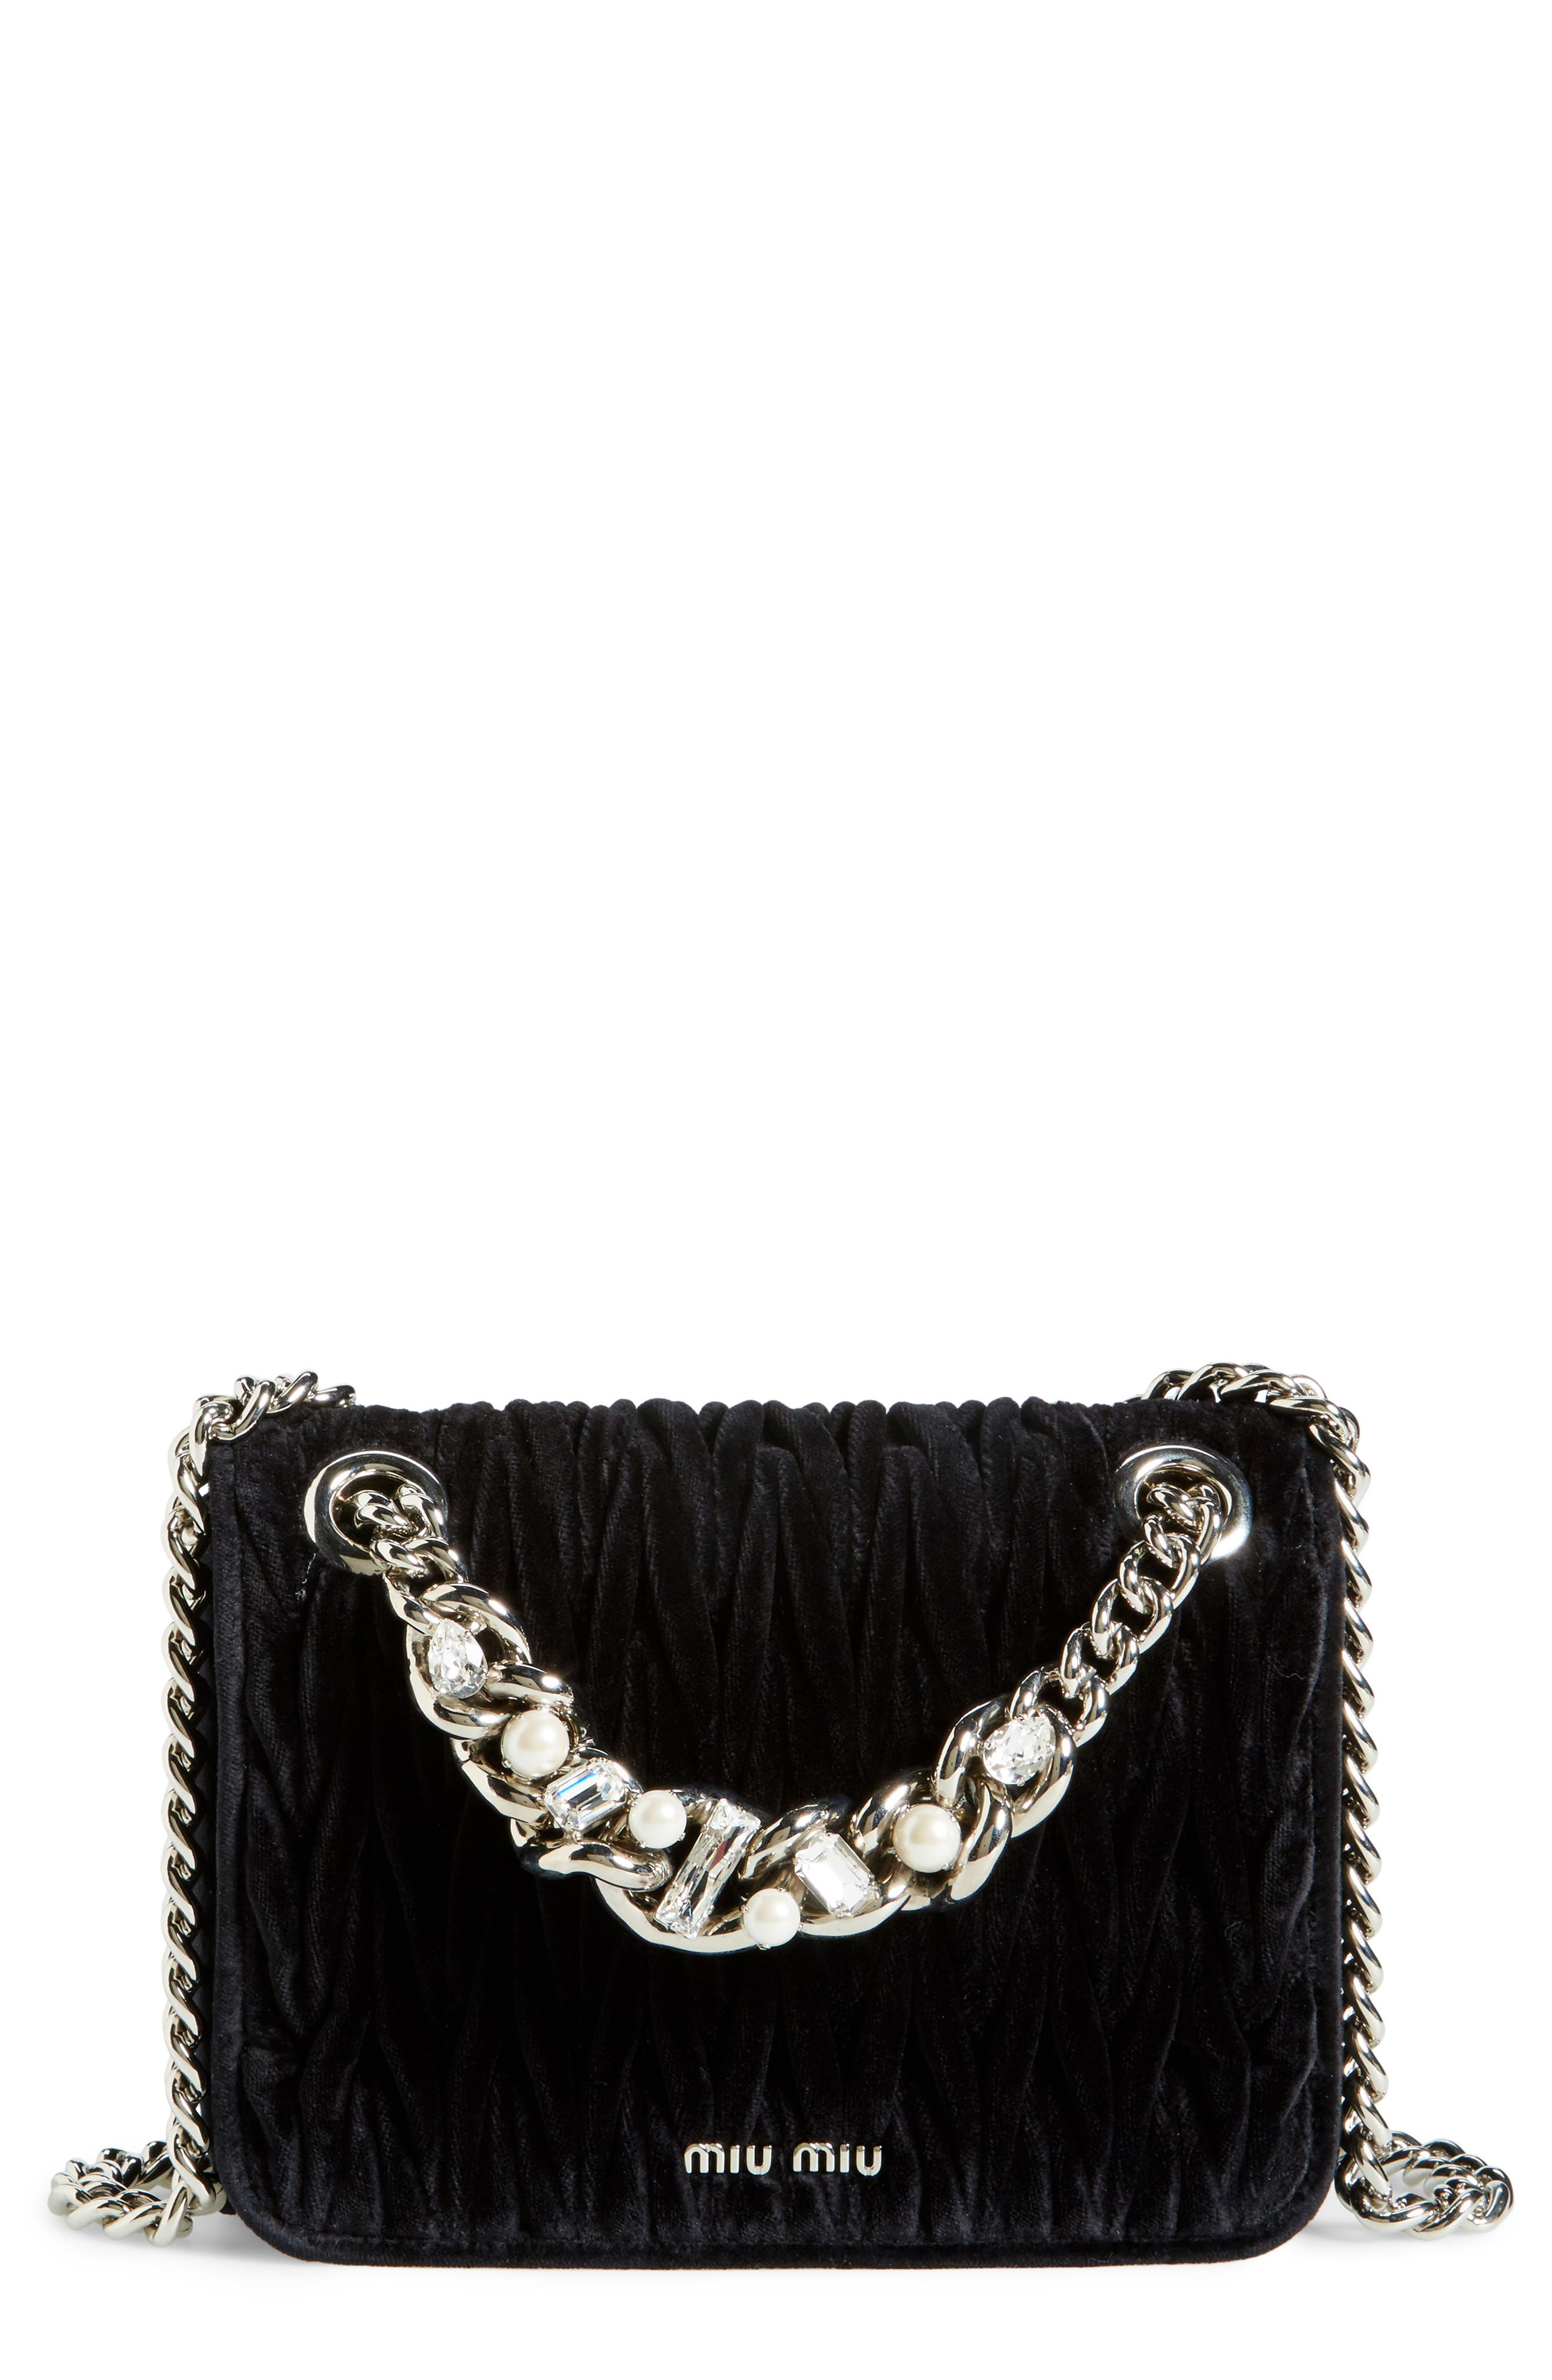 MIU MIU Small Club Velvet Matelassé Shoulder Bag